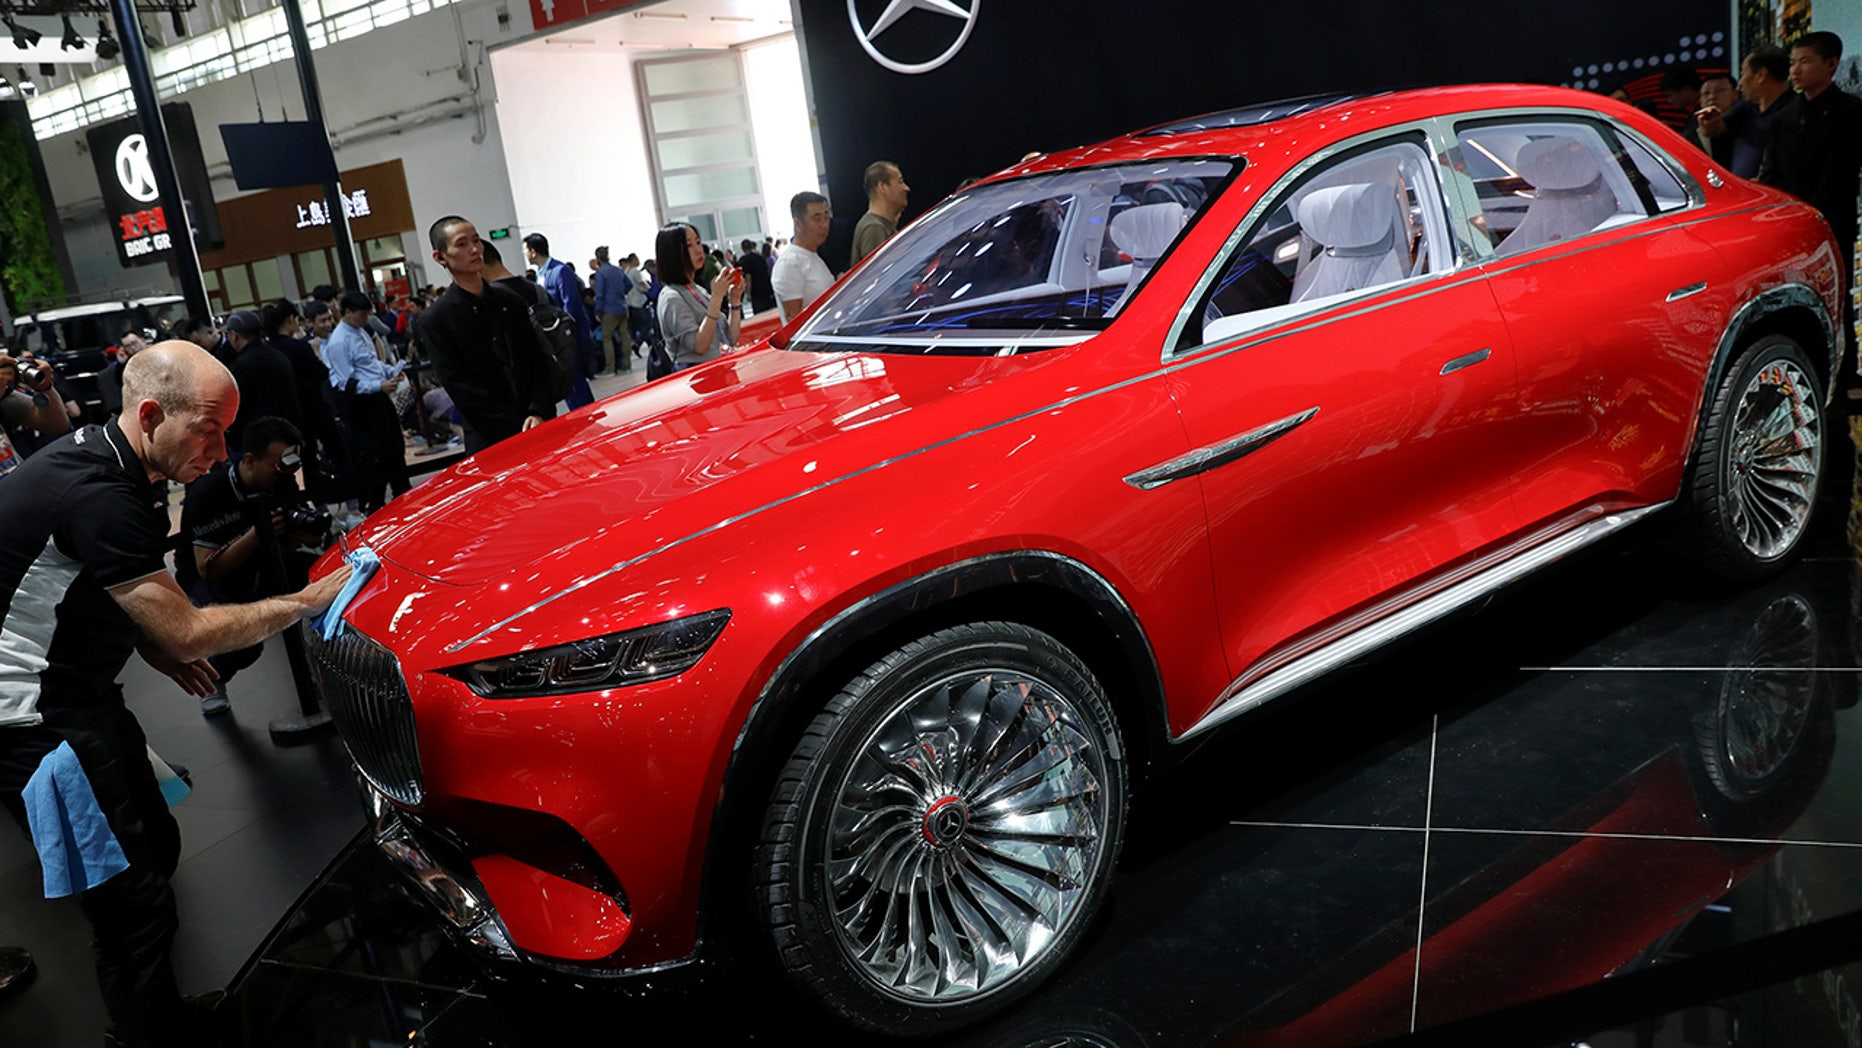 A member of staff cleans the Mercedes-Maybach Ultimate Luxury displayed during a media preview of the Auto China 2018 motor show in Beijing, China April 25, 2018. REUTERS/Damir Sagolj - RC17A27CF8B0